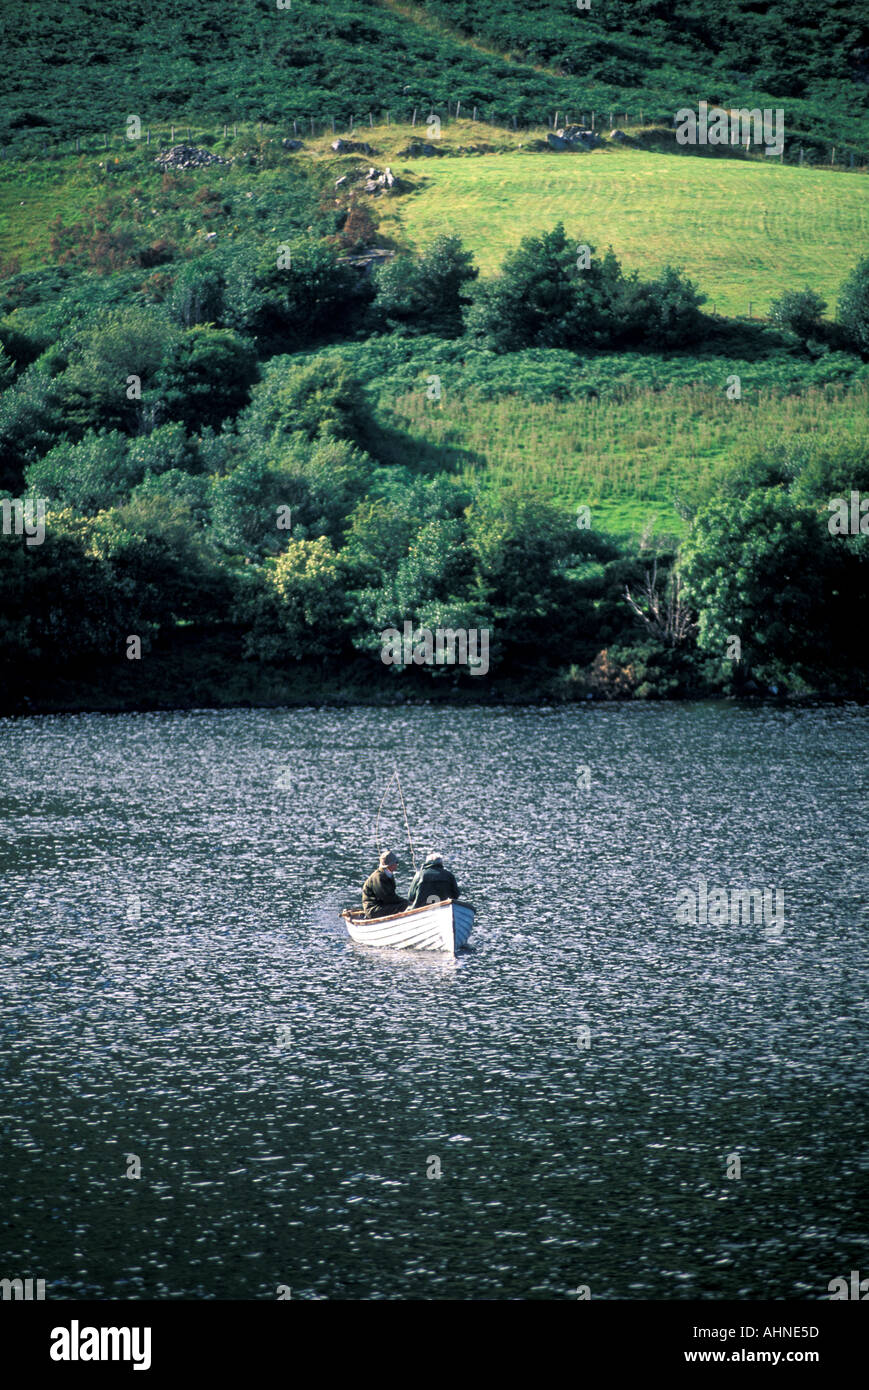 IRELAND Two Fisherman in a Boat Rippled Lake - Stock Image